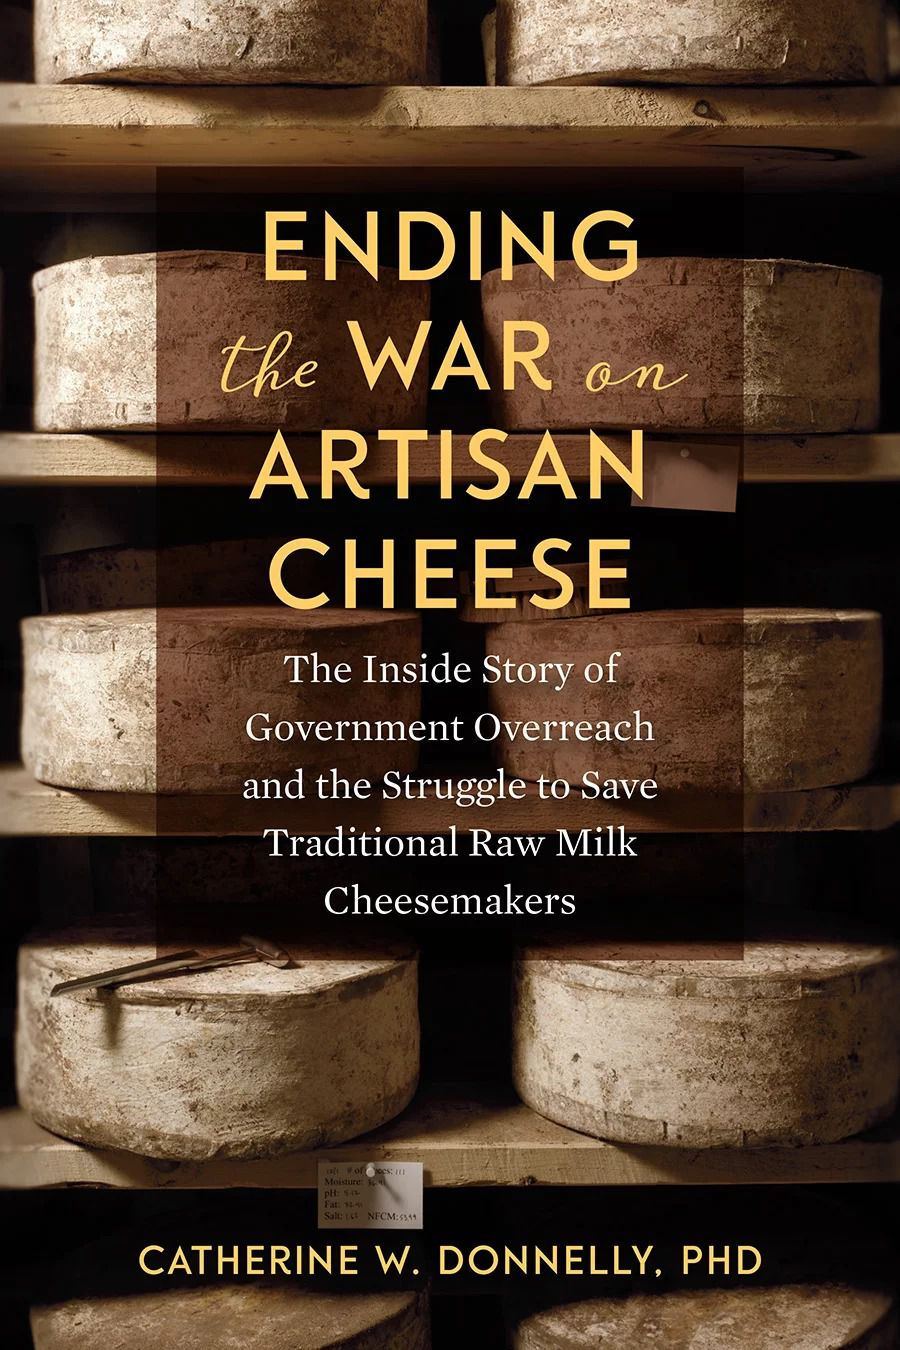 The cover of the book 'Ending the War on Artisan Cheese'